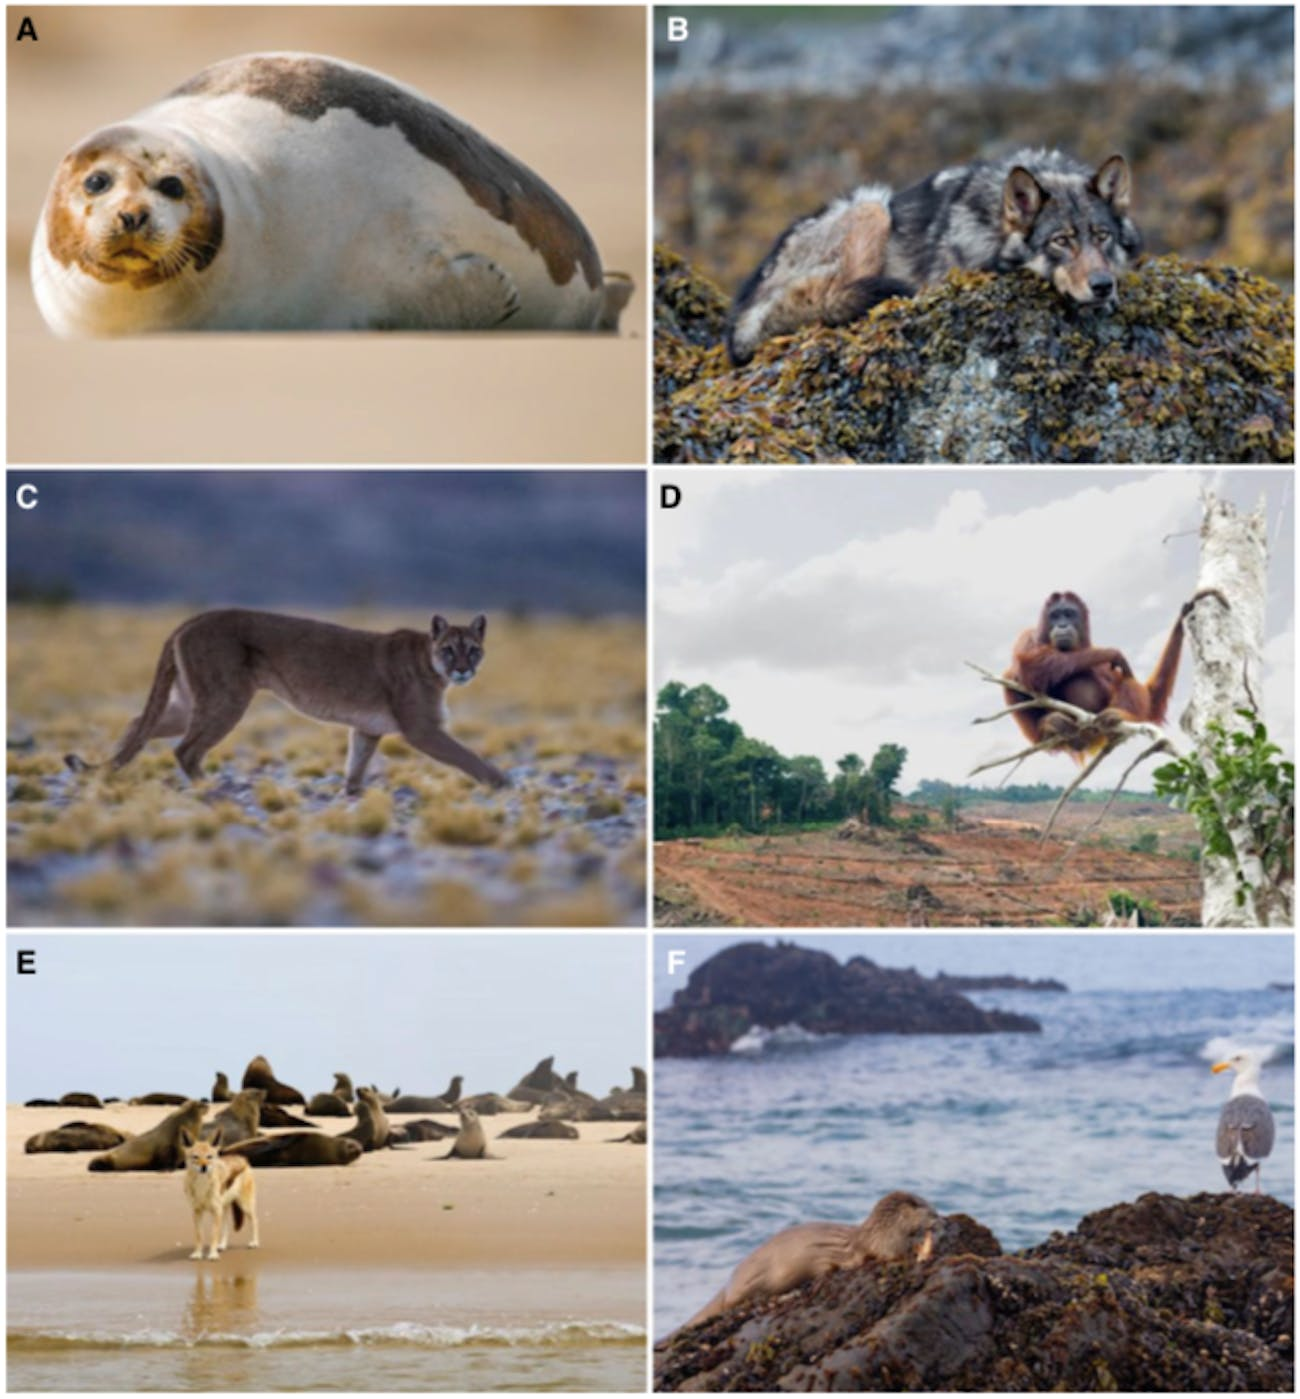 large-bodied predators in unexpected habitats